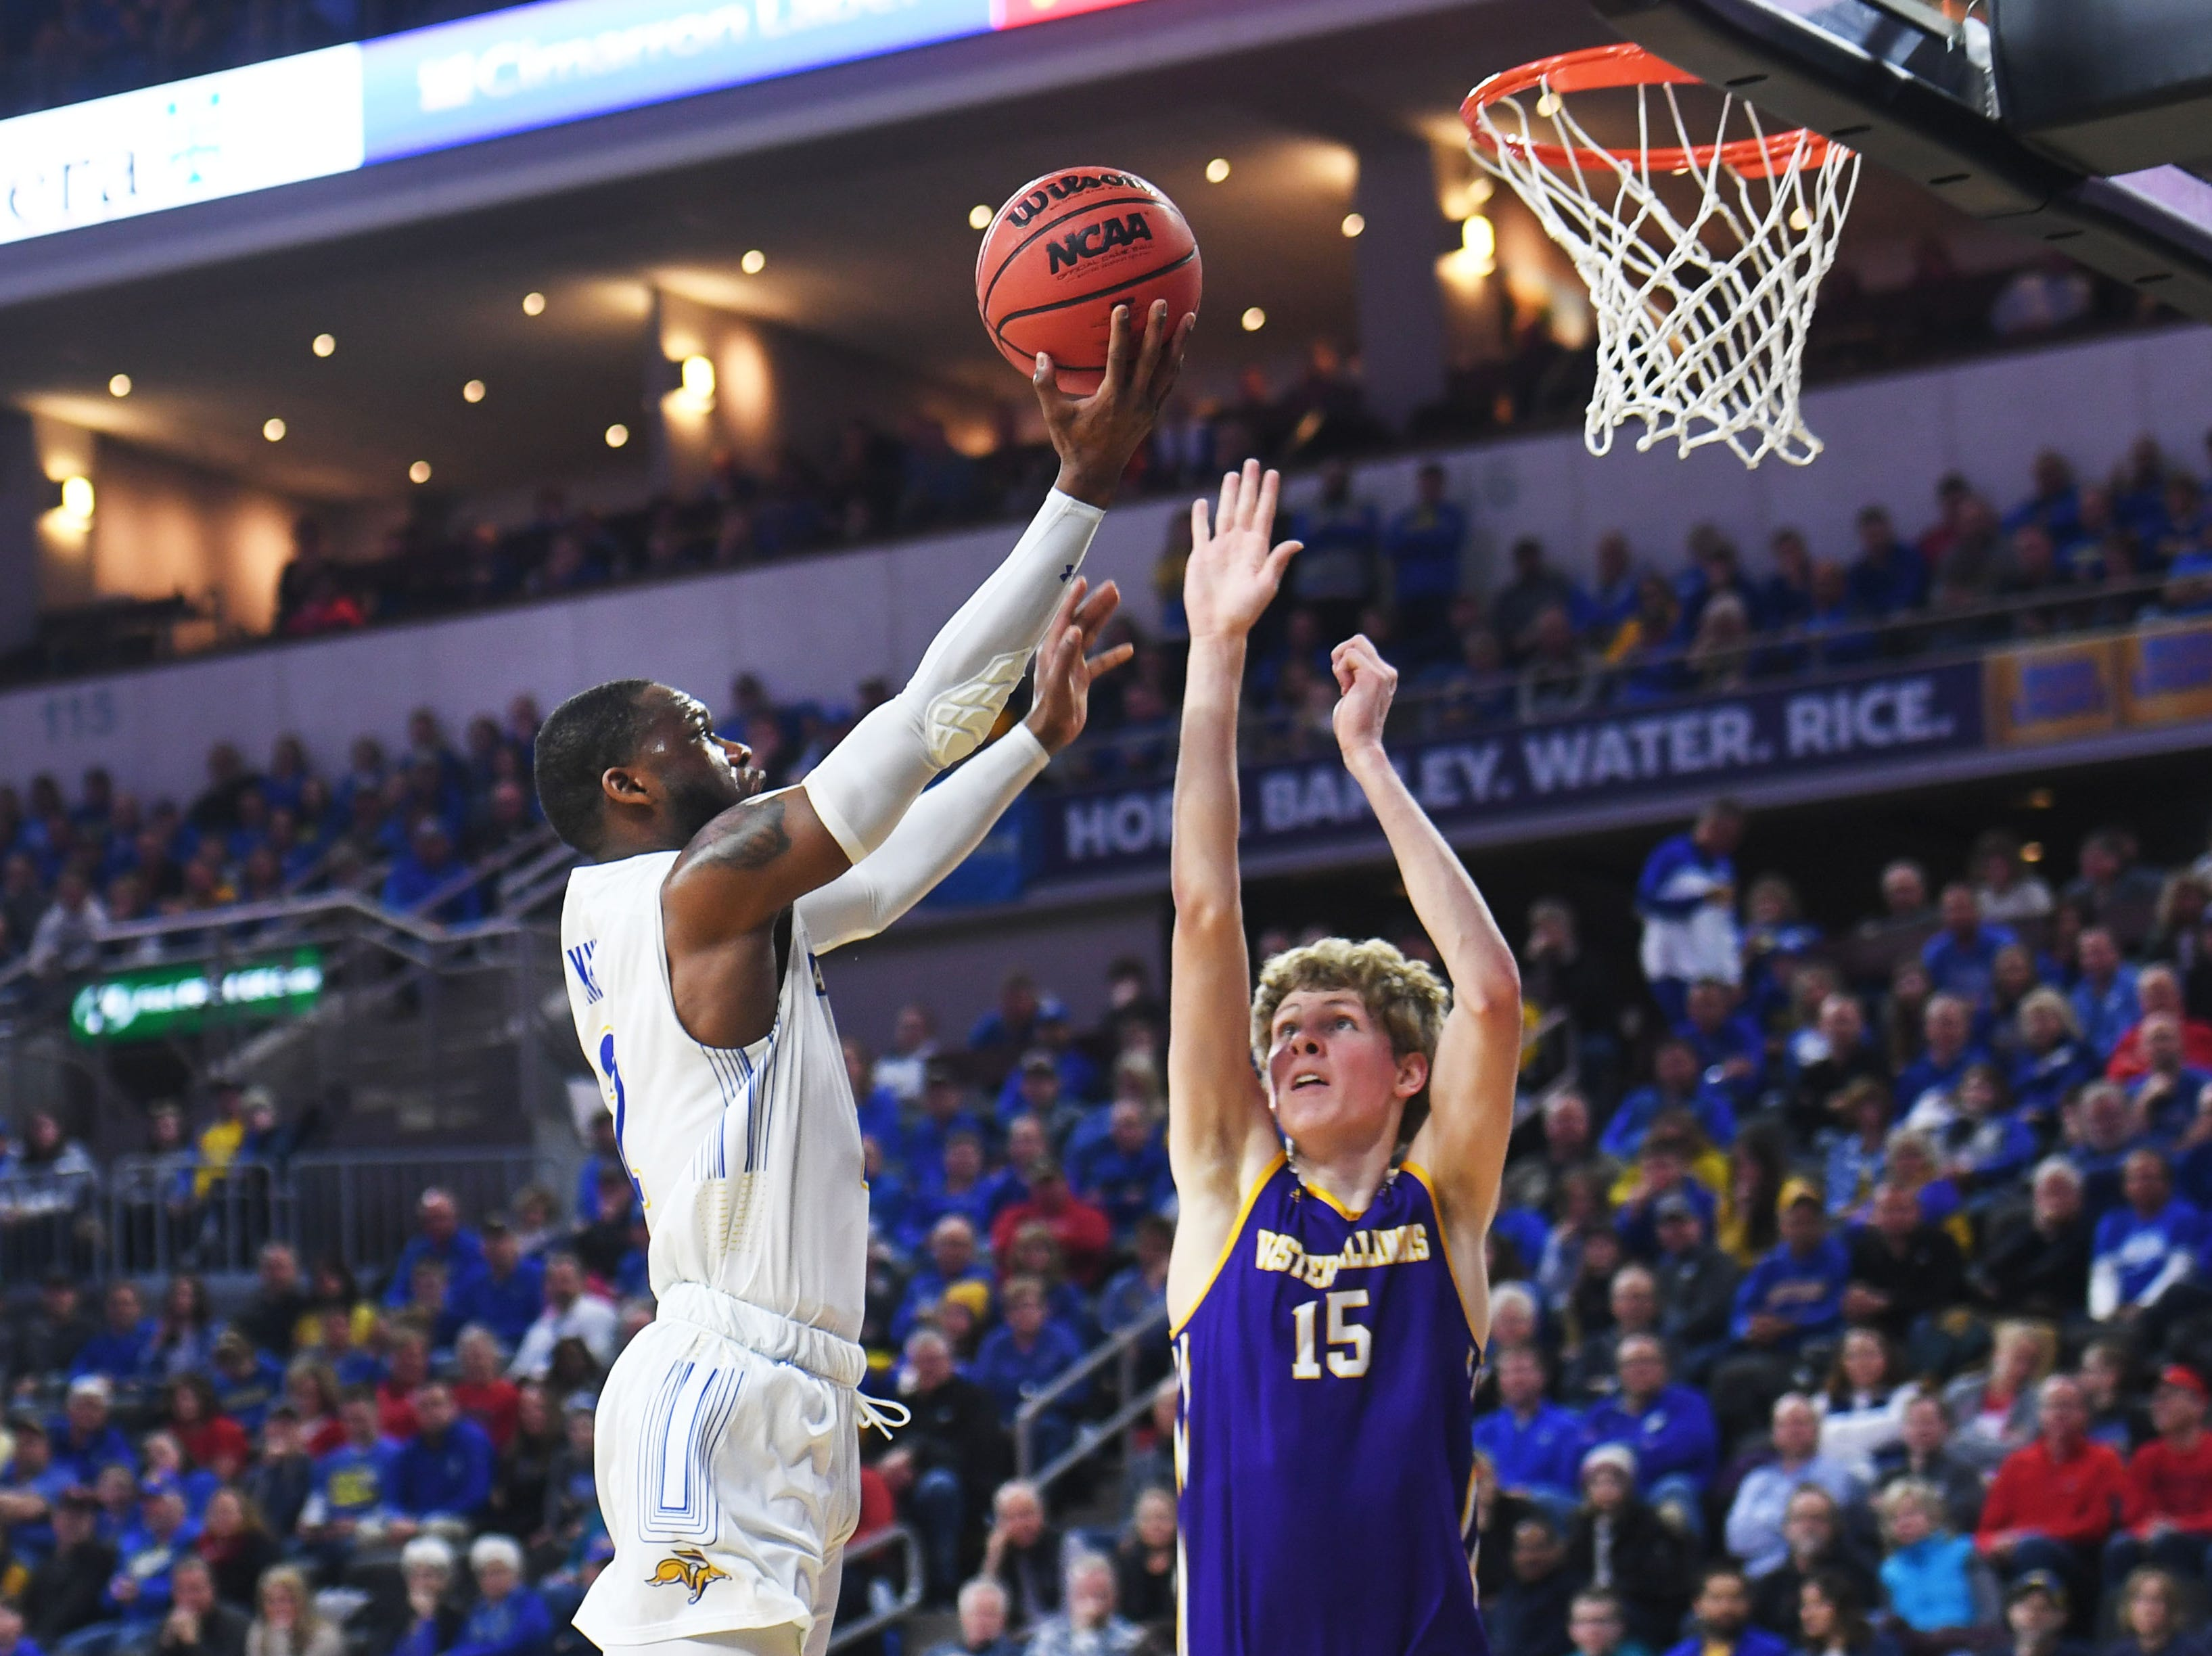 SDSU's Tevin King attempts to take a shot against Western Illinois' Ben Pyle during the game Saturday, March 9, in the Summit League tournament at the Denny Sanford Premier Center in Sioux Falls.